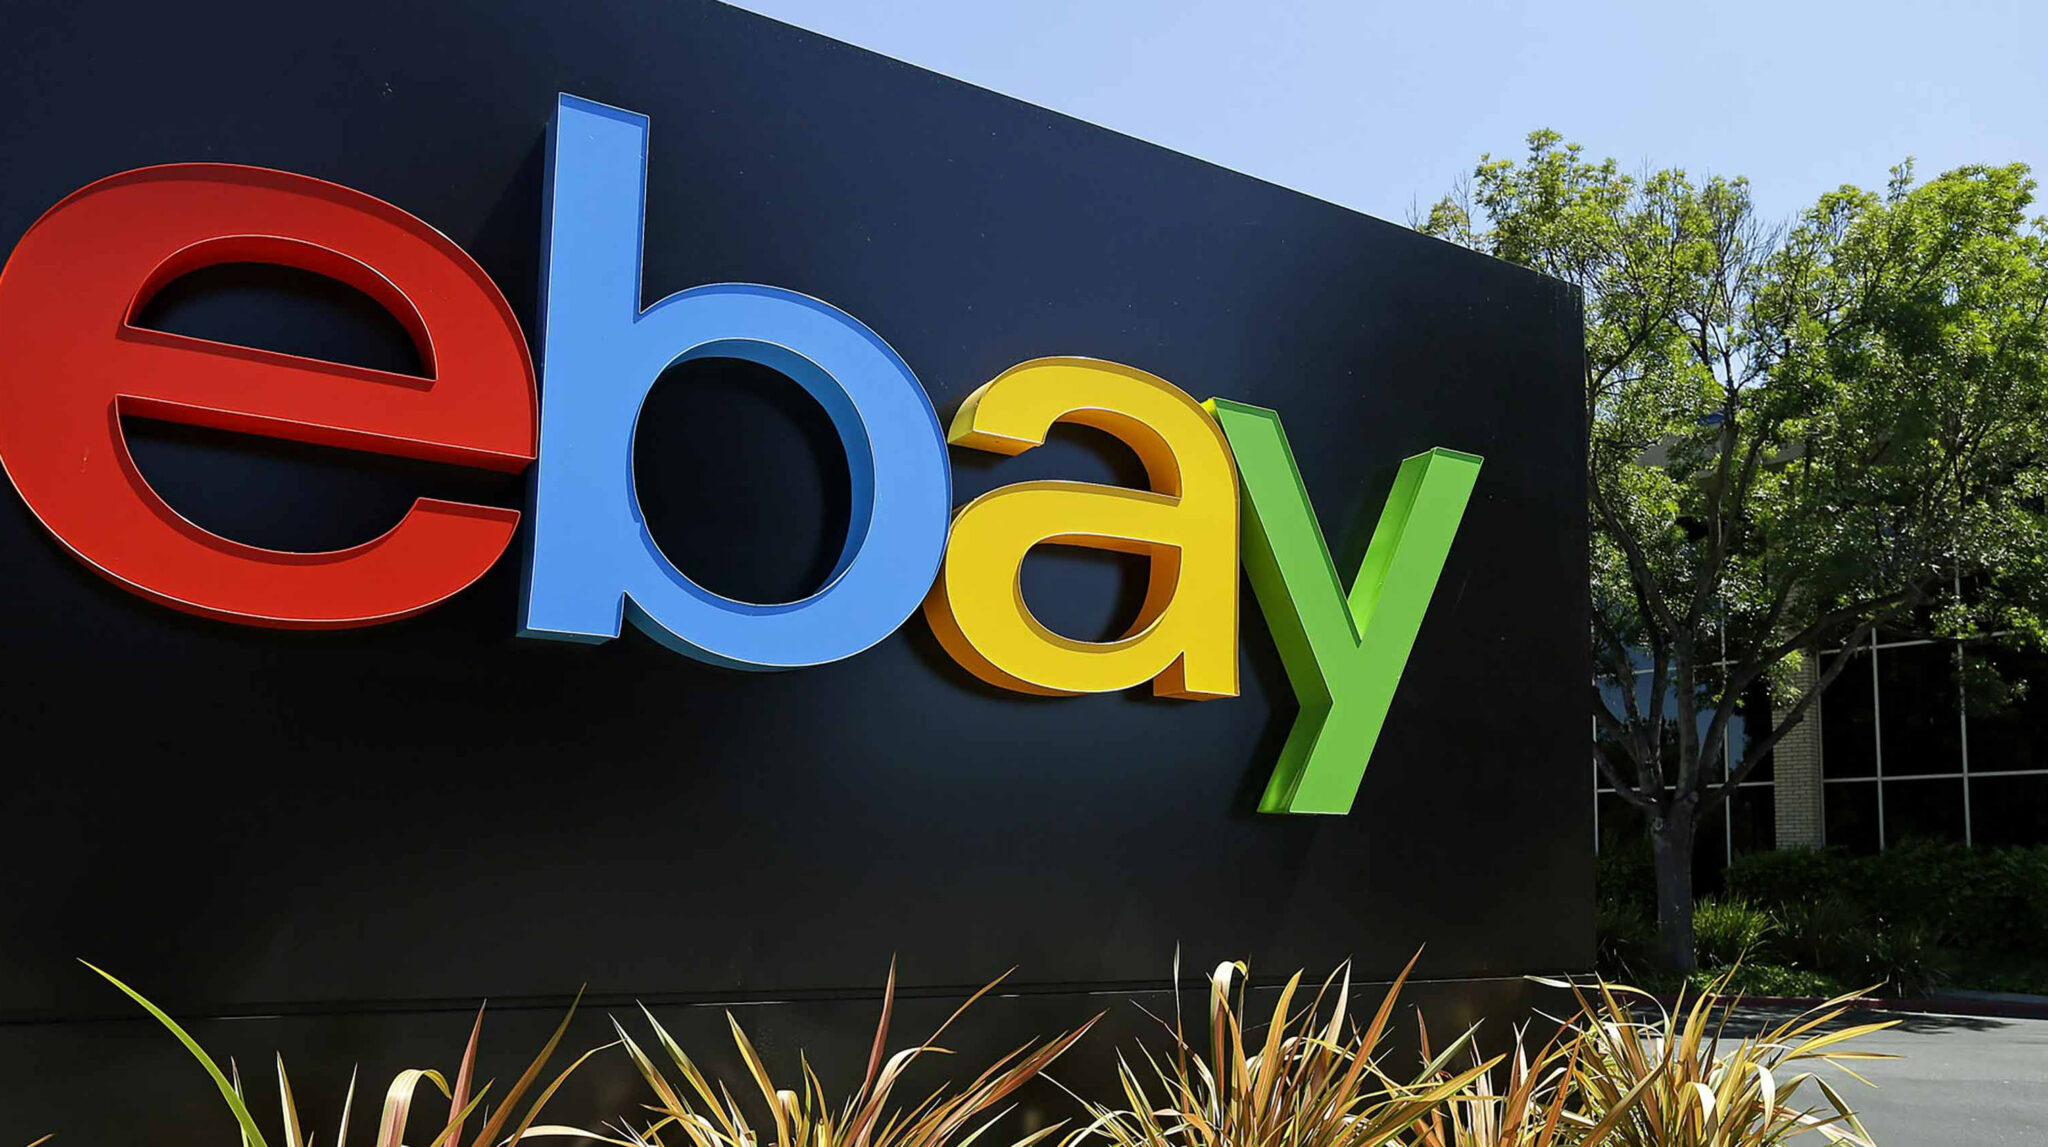 eBay Canada's refurbished store offers massive discounts on 'like-new' products